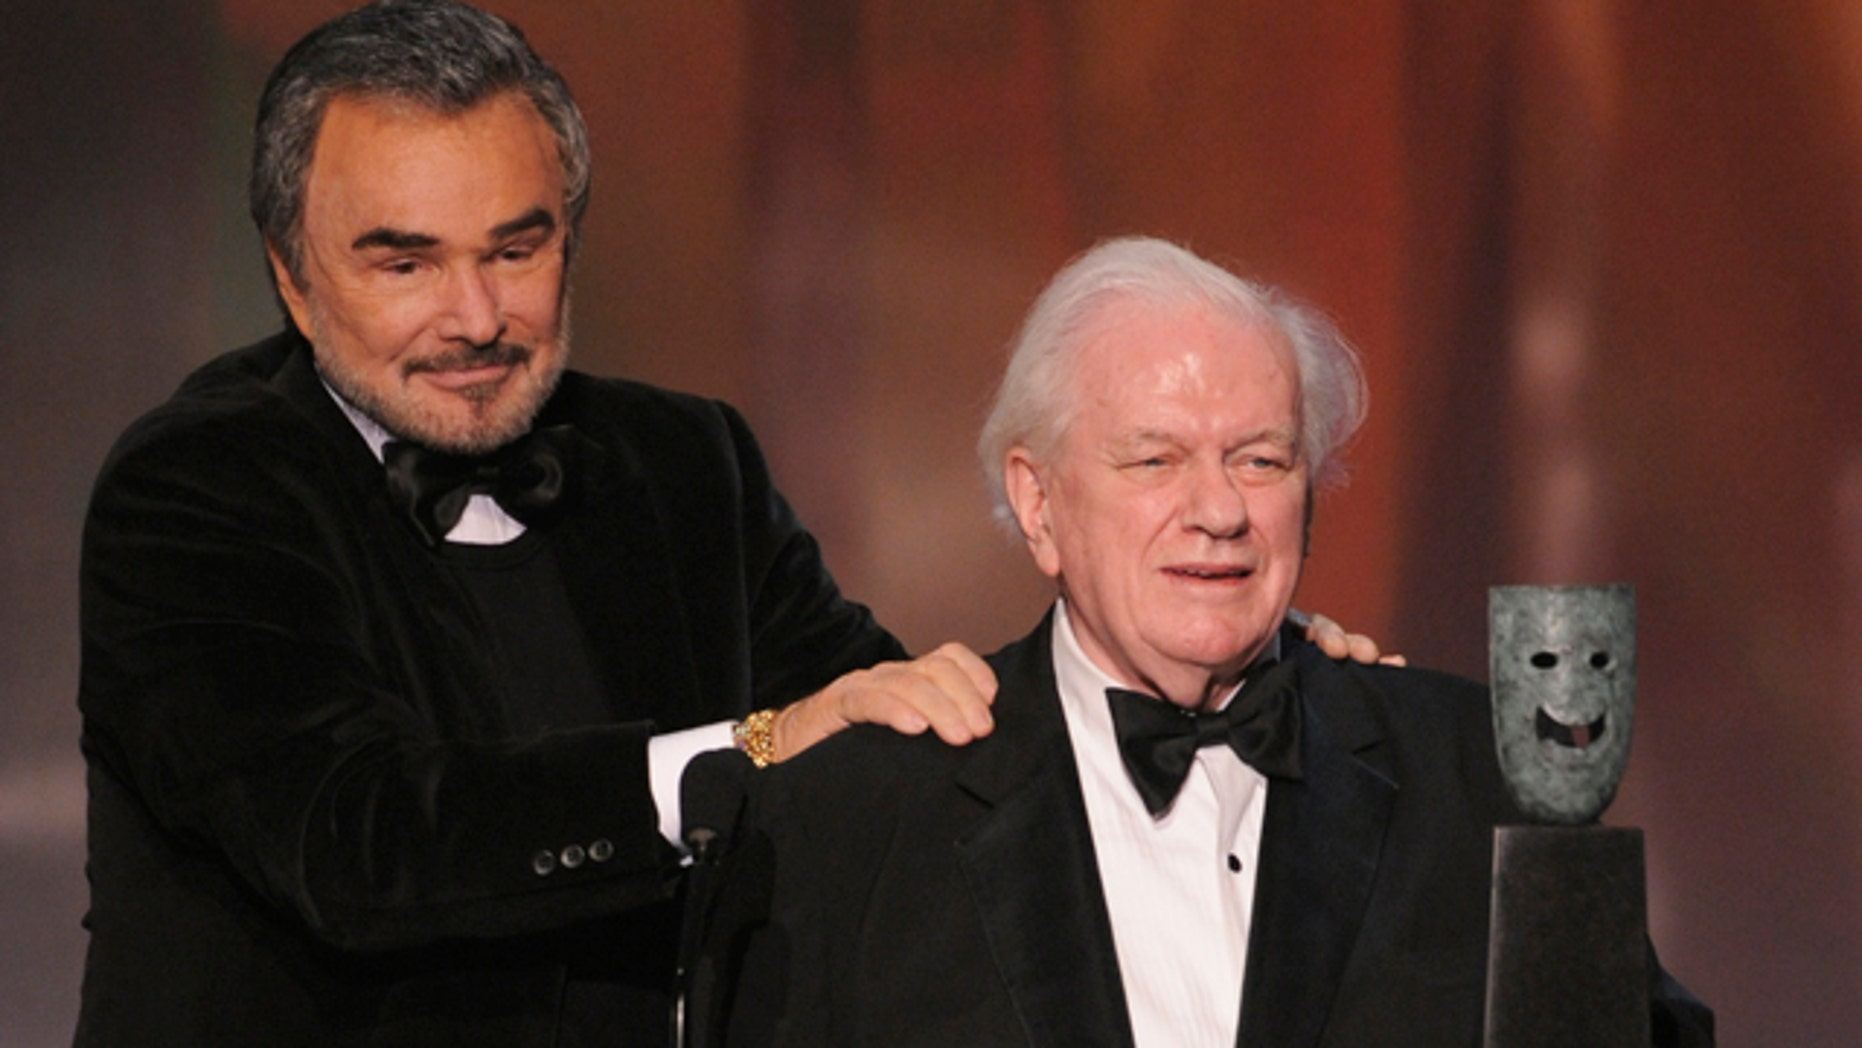 Jan. 27, 2008: Actor Charles Durning accepts the life achievement award from presenter Burt Reynolds, left, at the 14th Annual Screen Actors Guild Awards in Los Angeles.